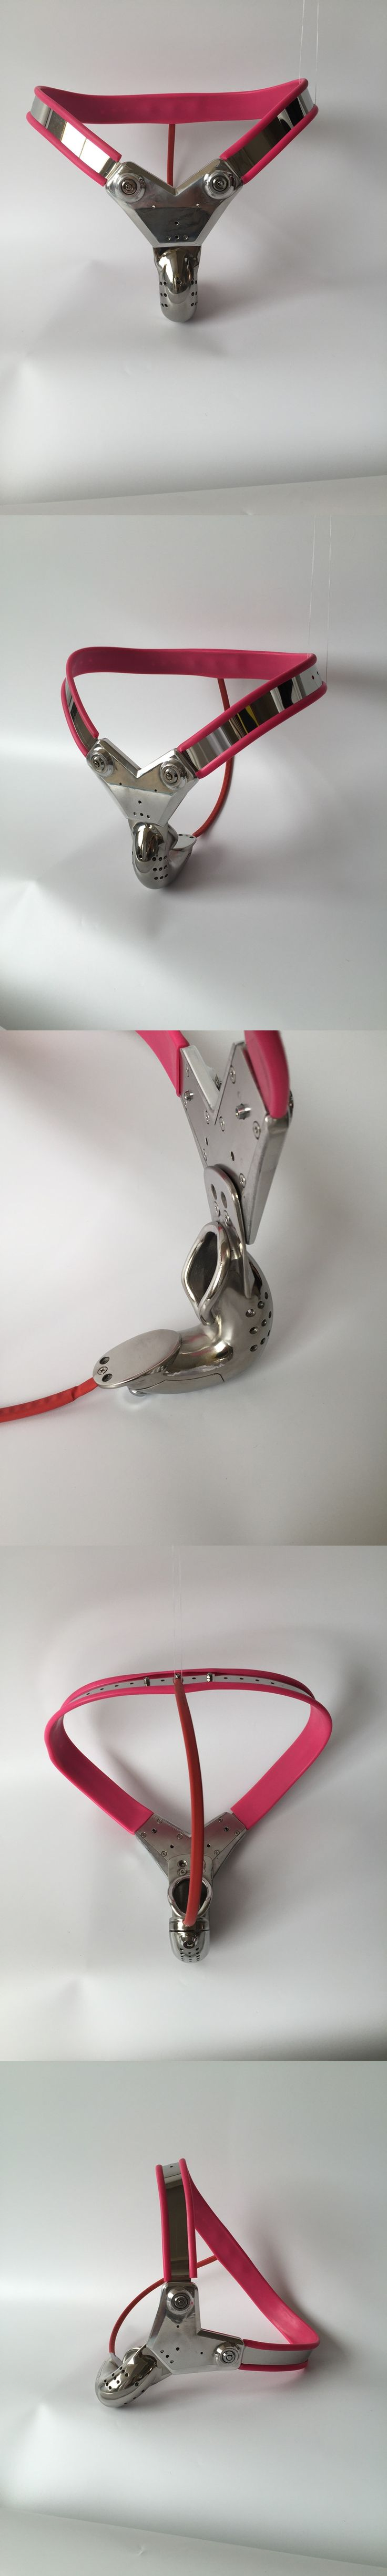 Y Style  stainless steel red female chastity belt device with anal beads plug sex toys bdsm fetish bondage restraints for woman